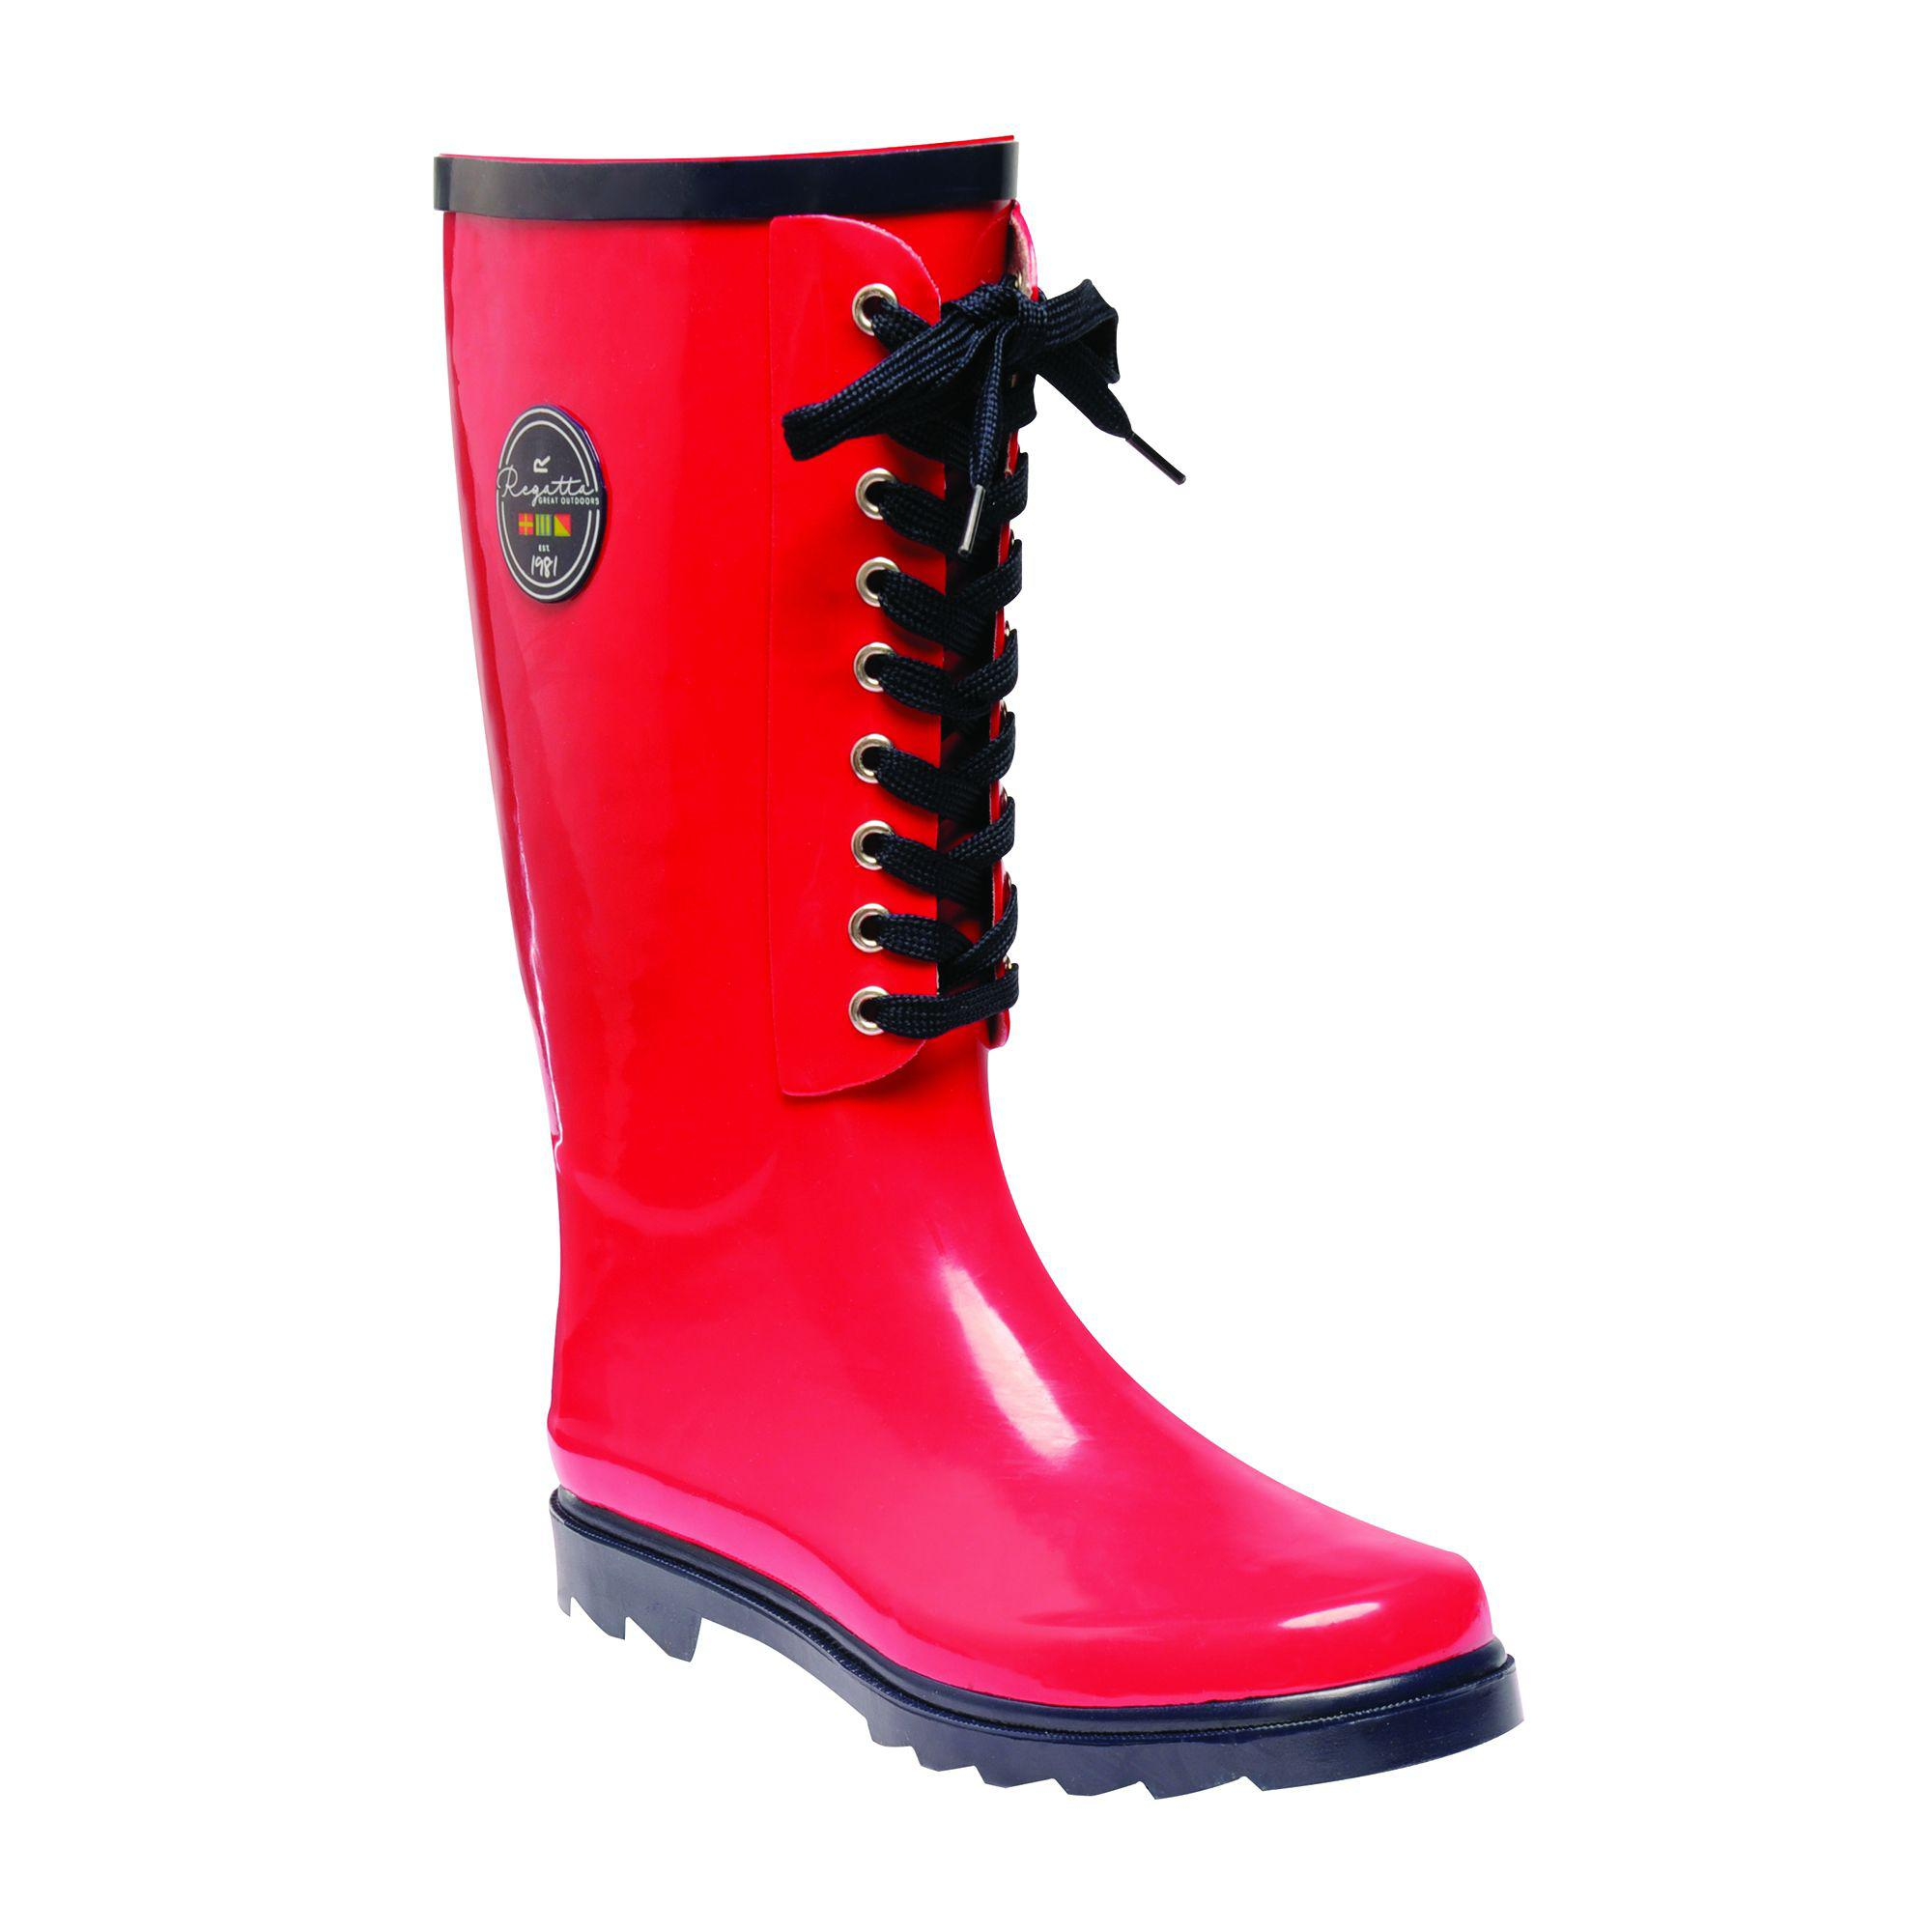 Yellow 'lady bayeux' wellington boots discount 2014 new cheapest price cheap sale genuine cheap sale shop offer sale pictures Eu0hoA